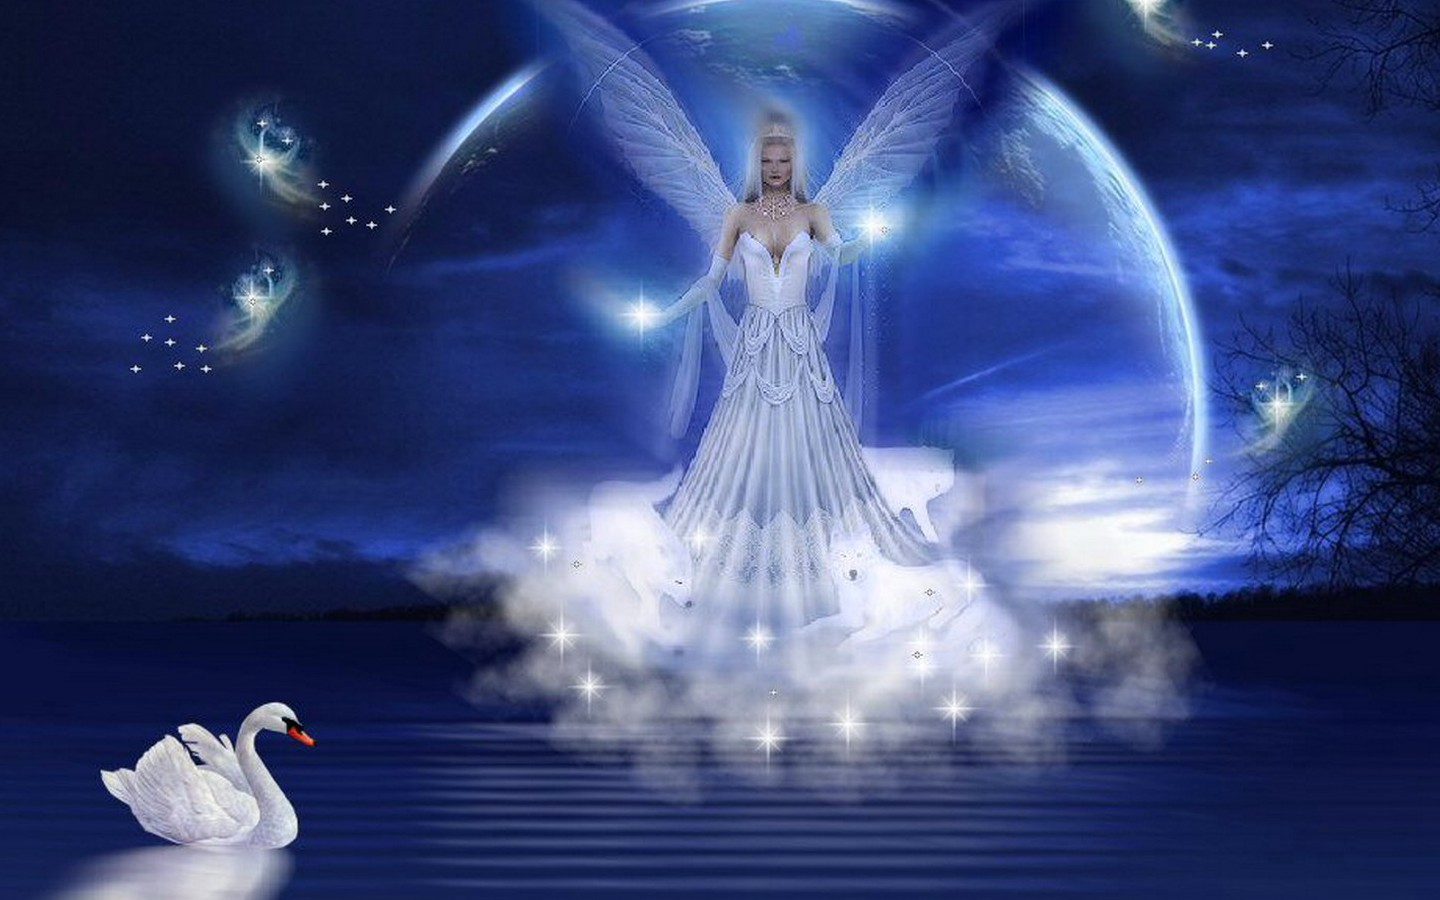 Beautiful Fantasy Angels Wallpapers 1440x900 PIXHOME 1440x900